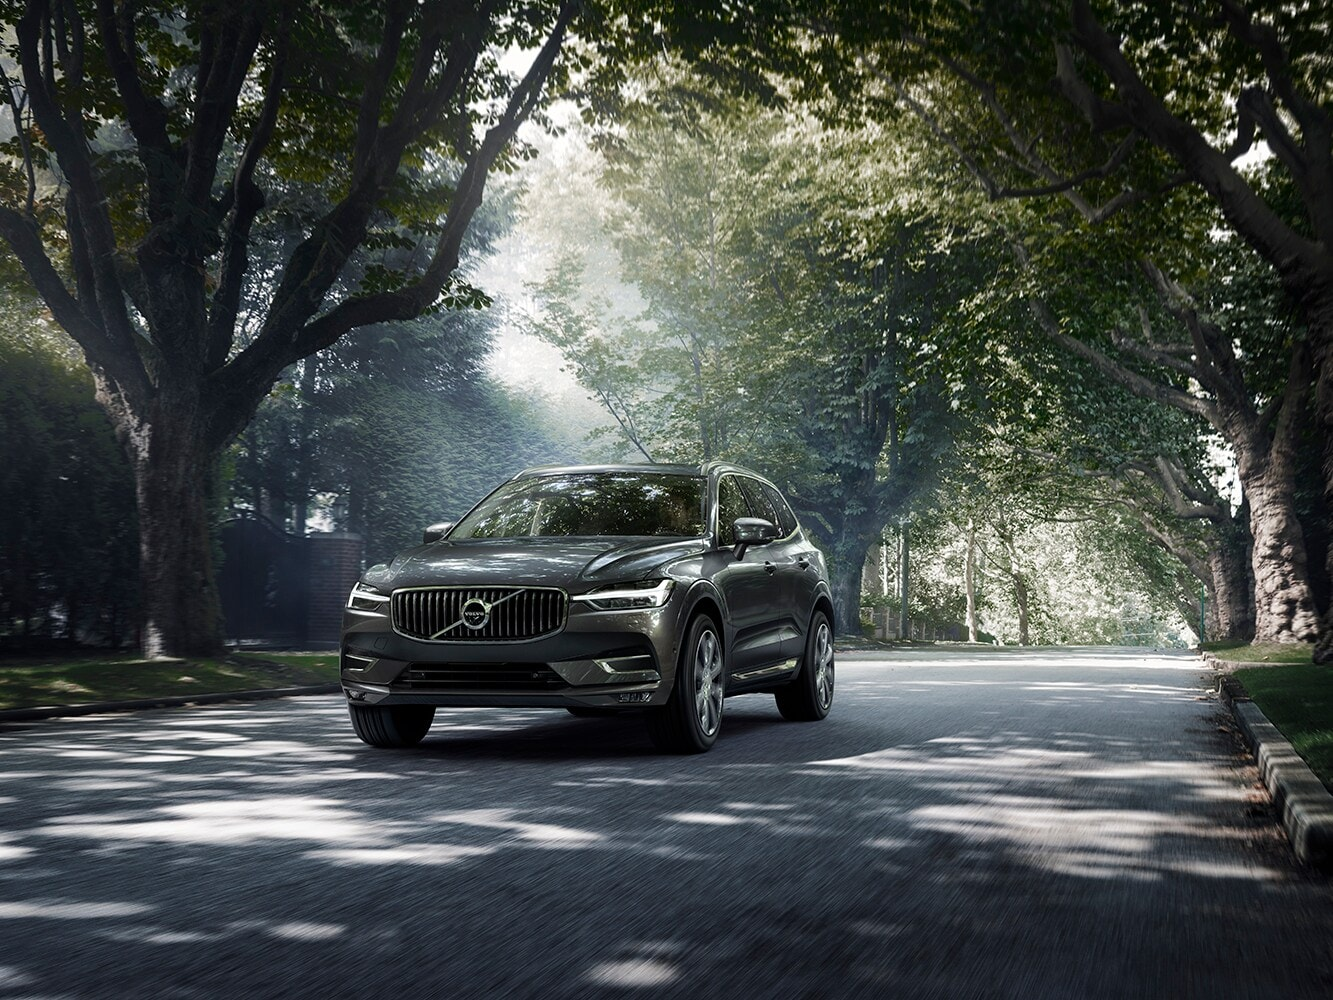 A Volvo XC60 drives down a tree-lined road